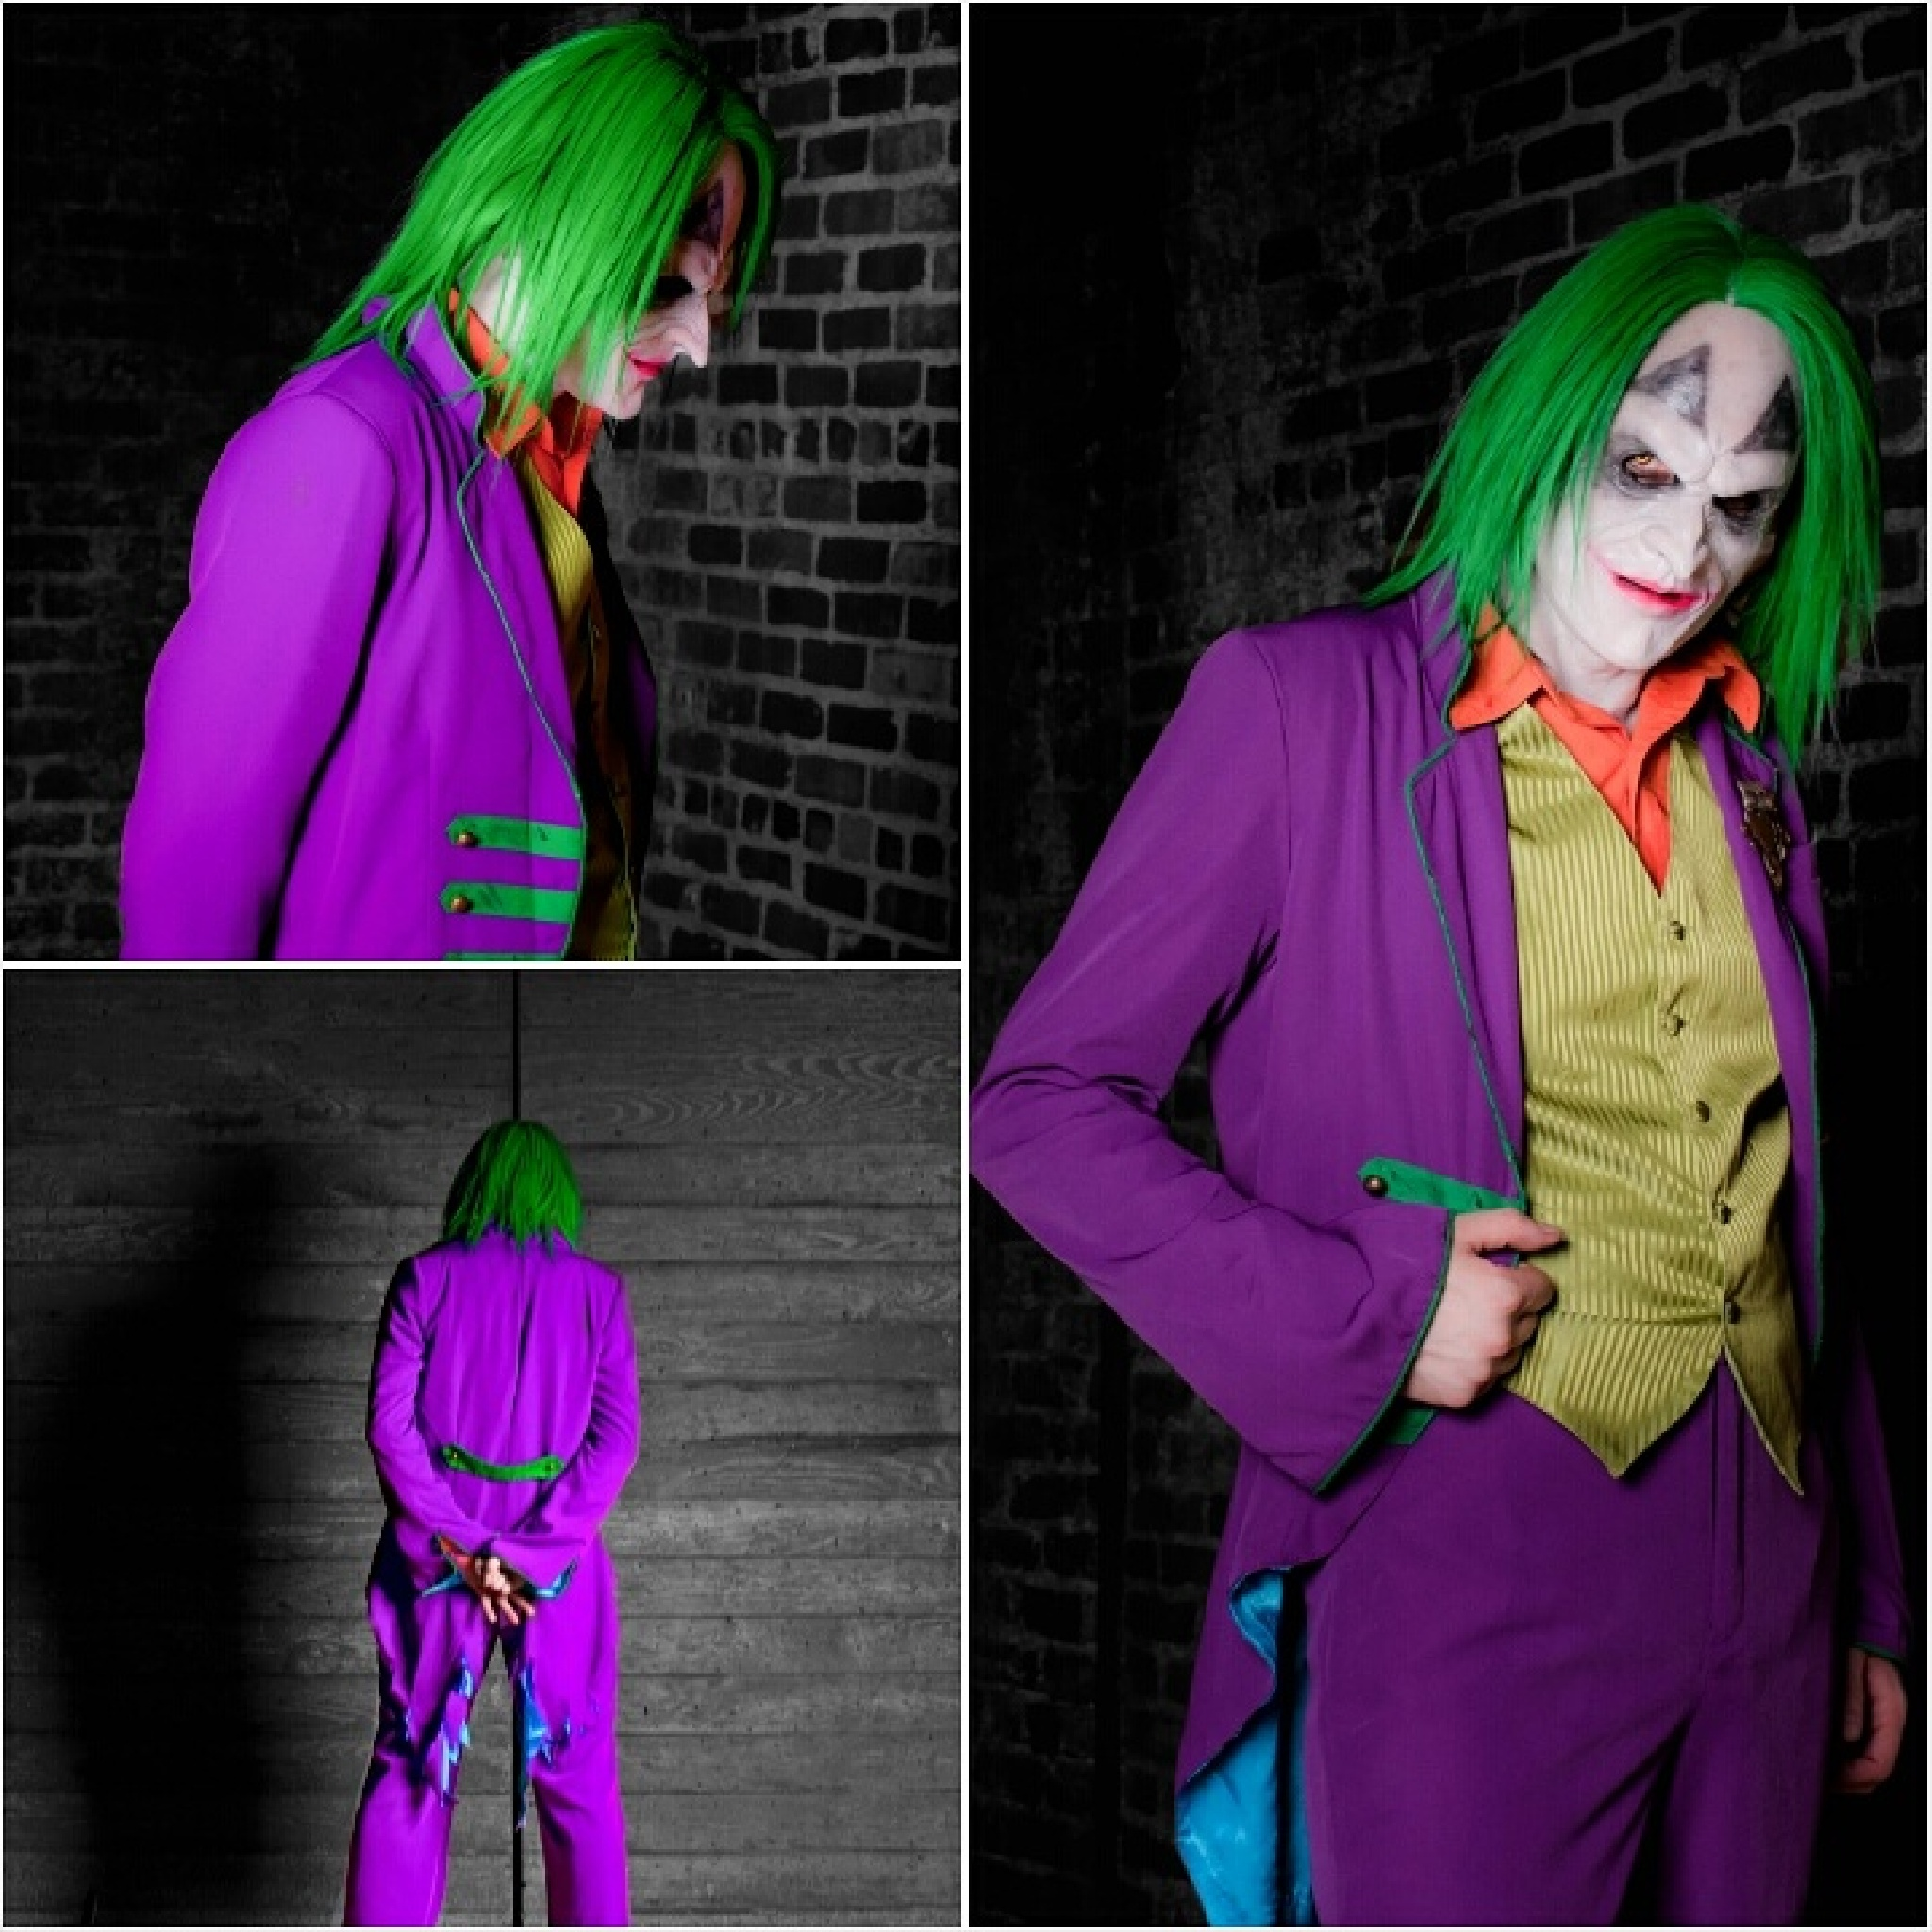 The joker by ted.dbahsee